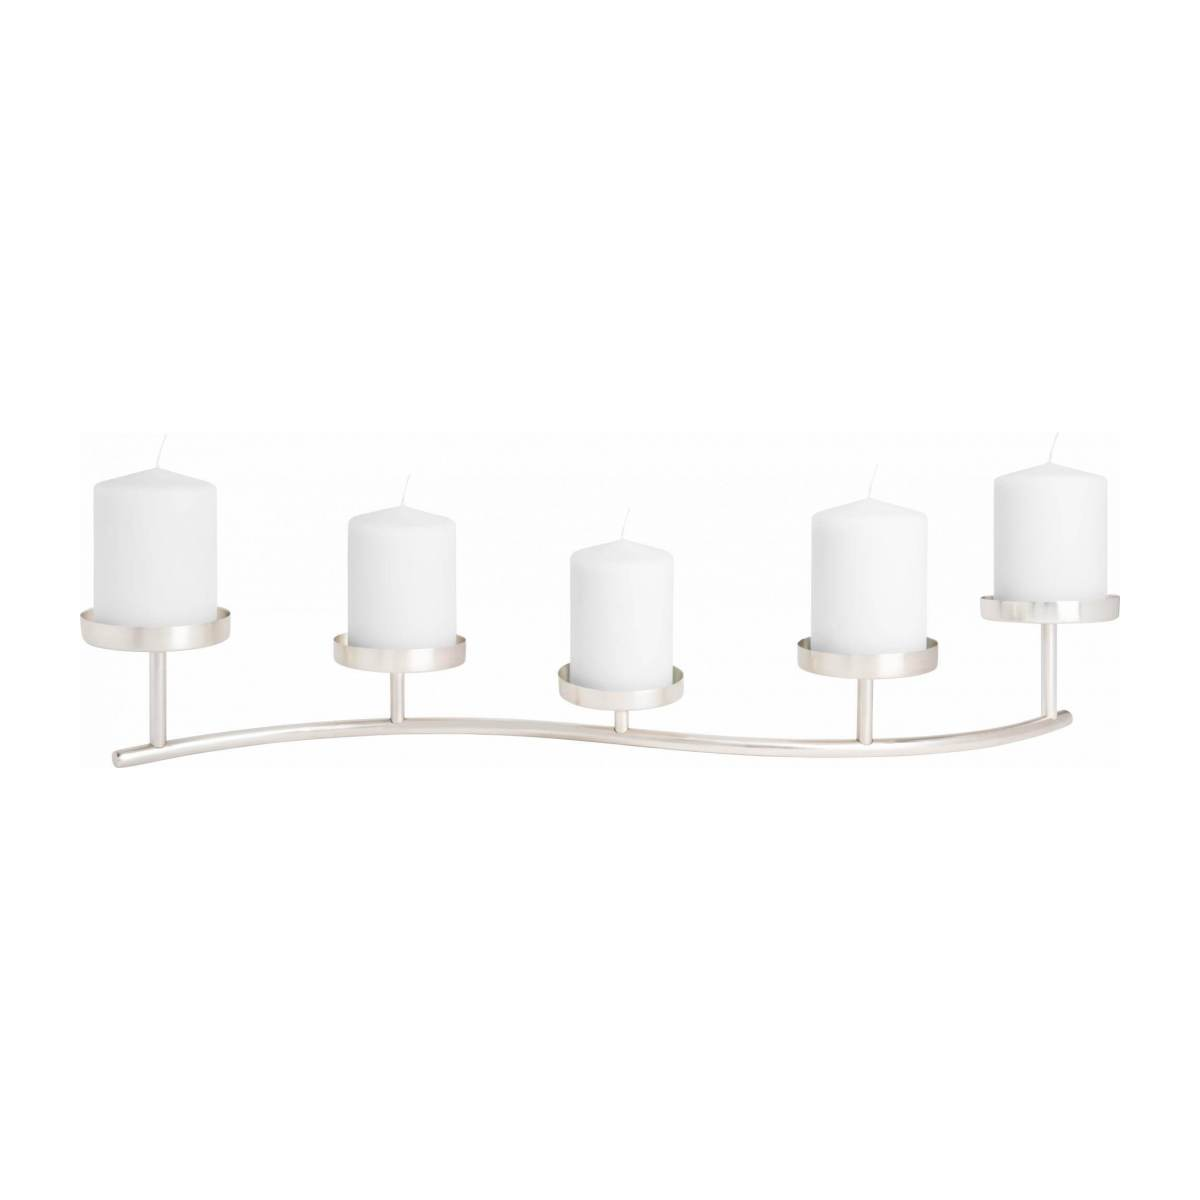 Candle holder made of metal for 5 candles, silver n°2